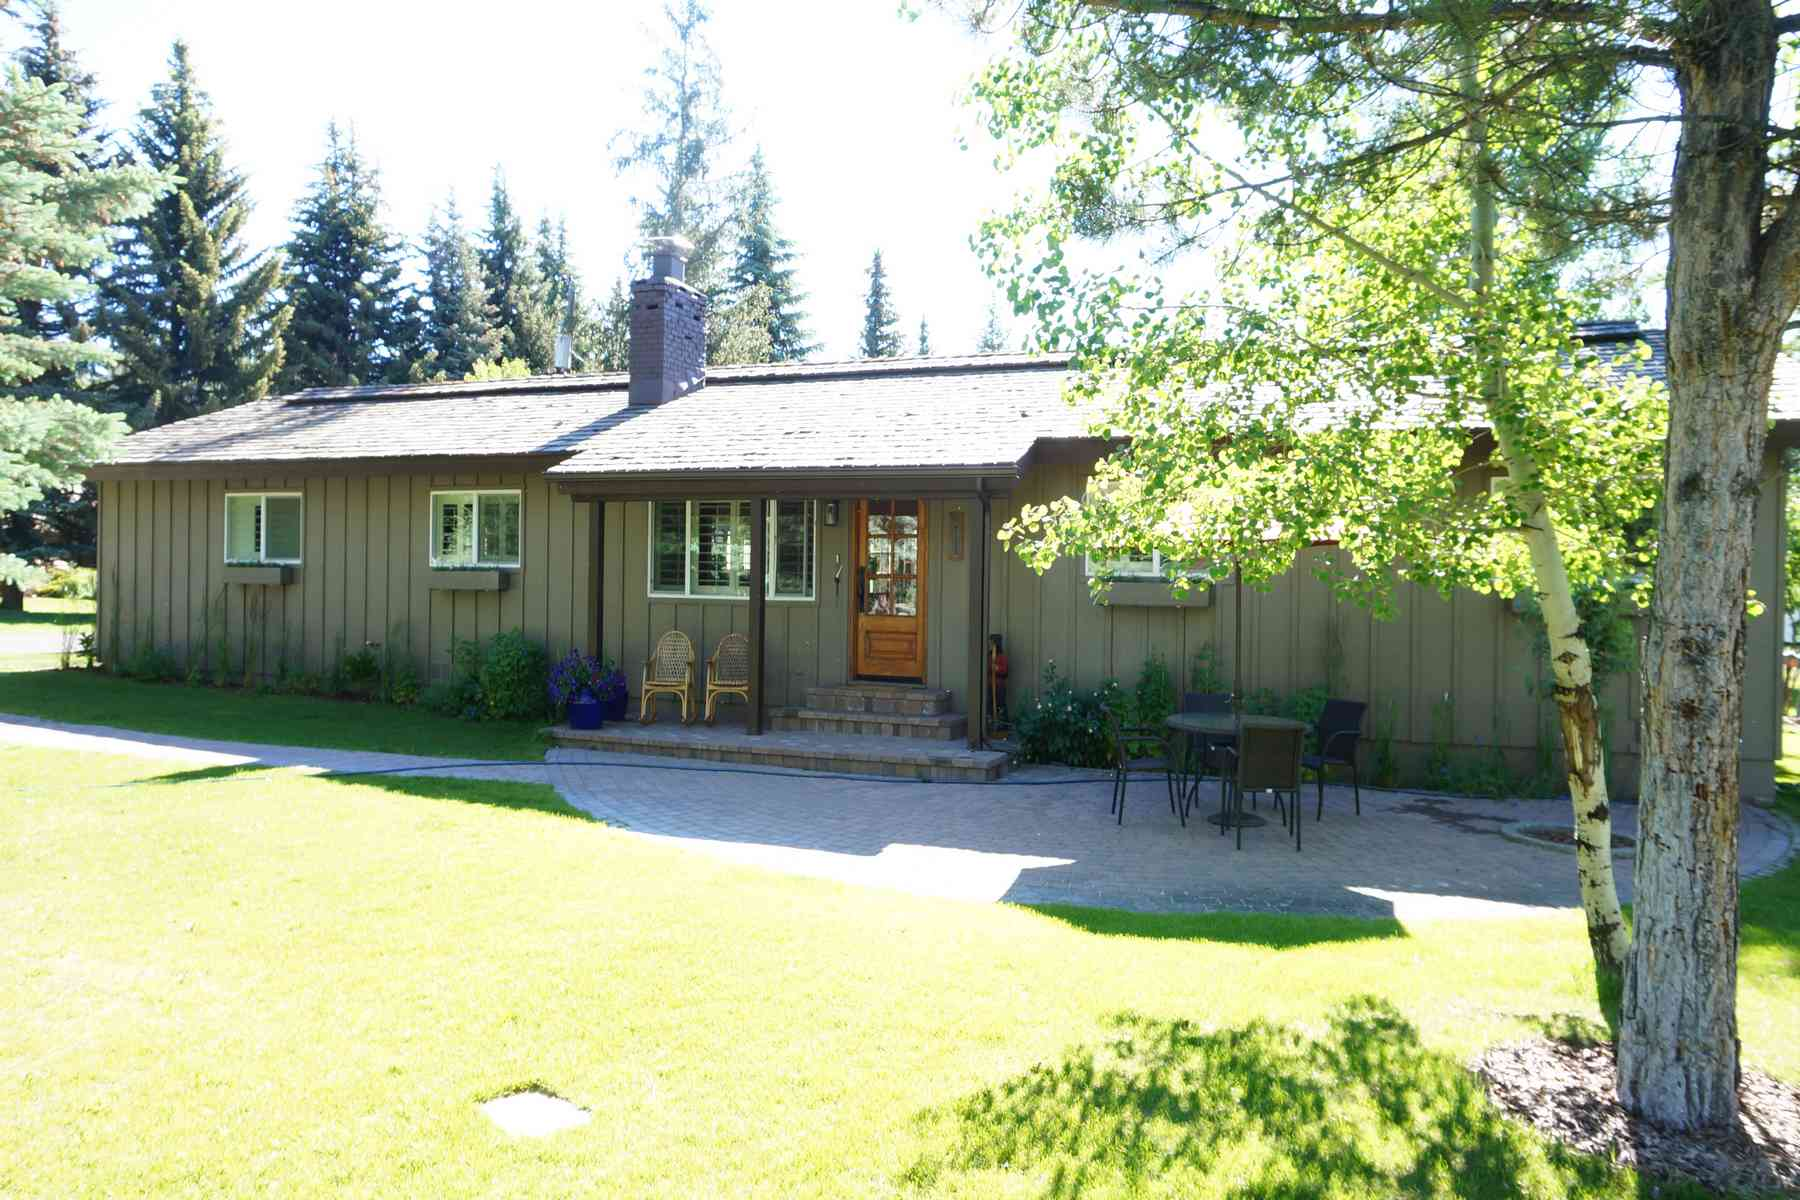 Single Family Home for Sale at Cute and Cozy Home 211 Penny Drive Ketchum, Idaho, 83340 United States